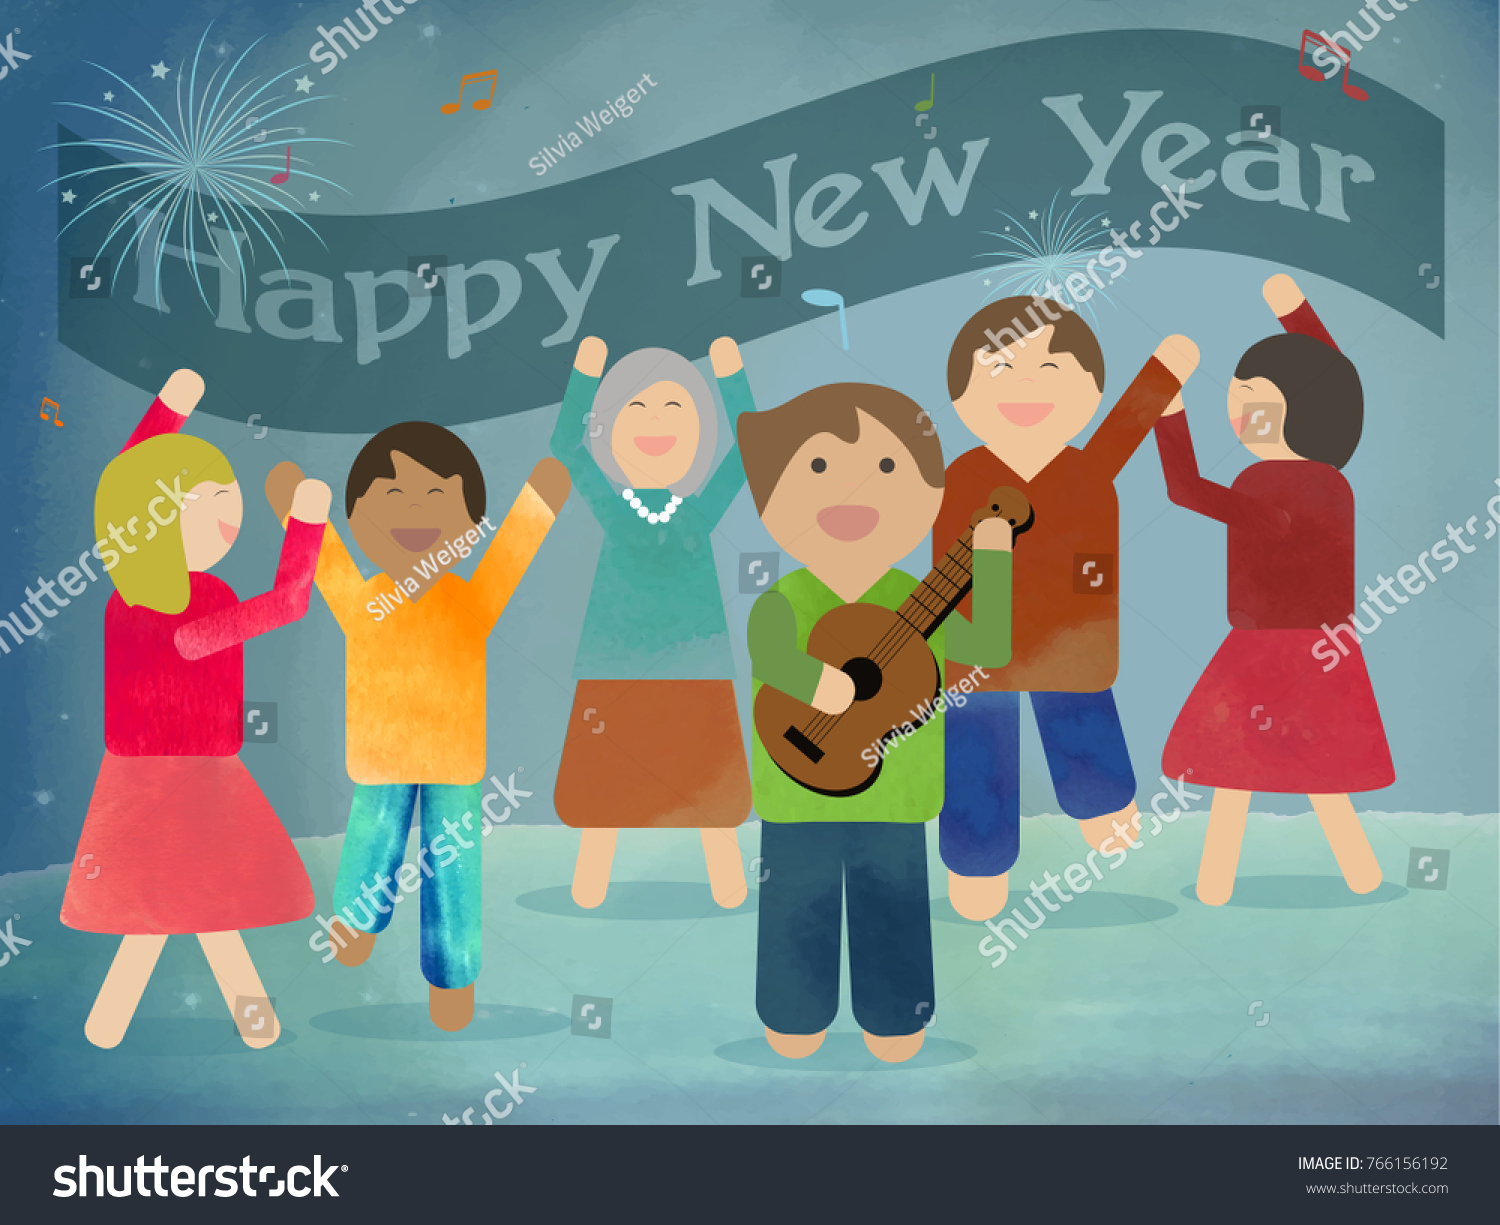 happy new year have fun take the ukulele make music dance and enjoy